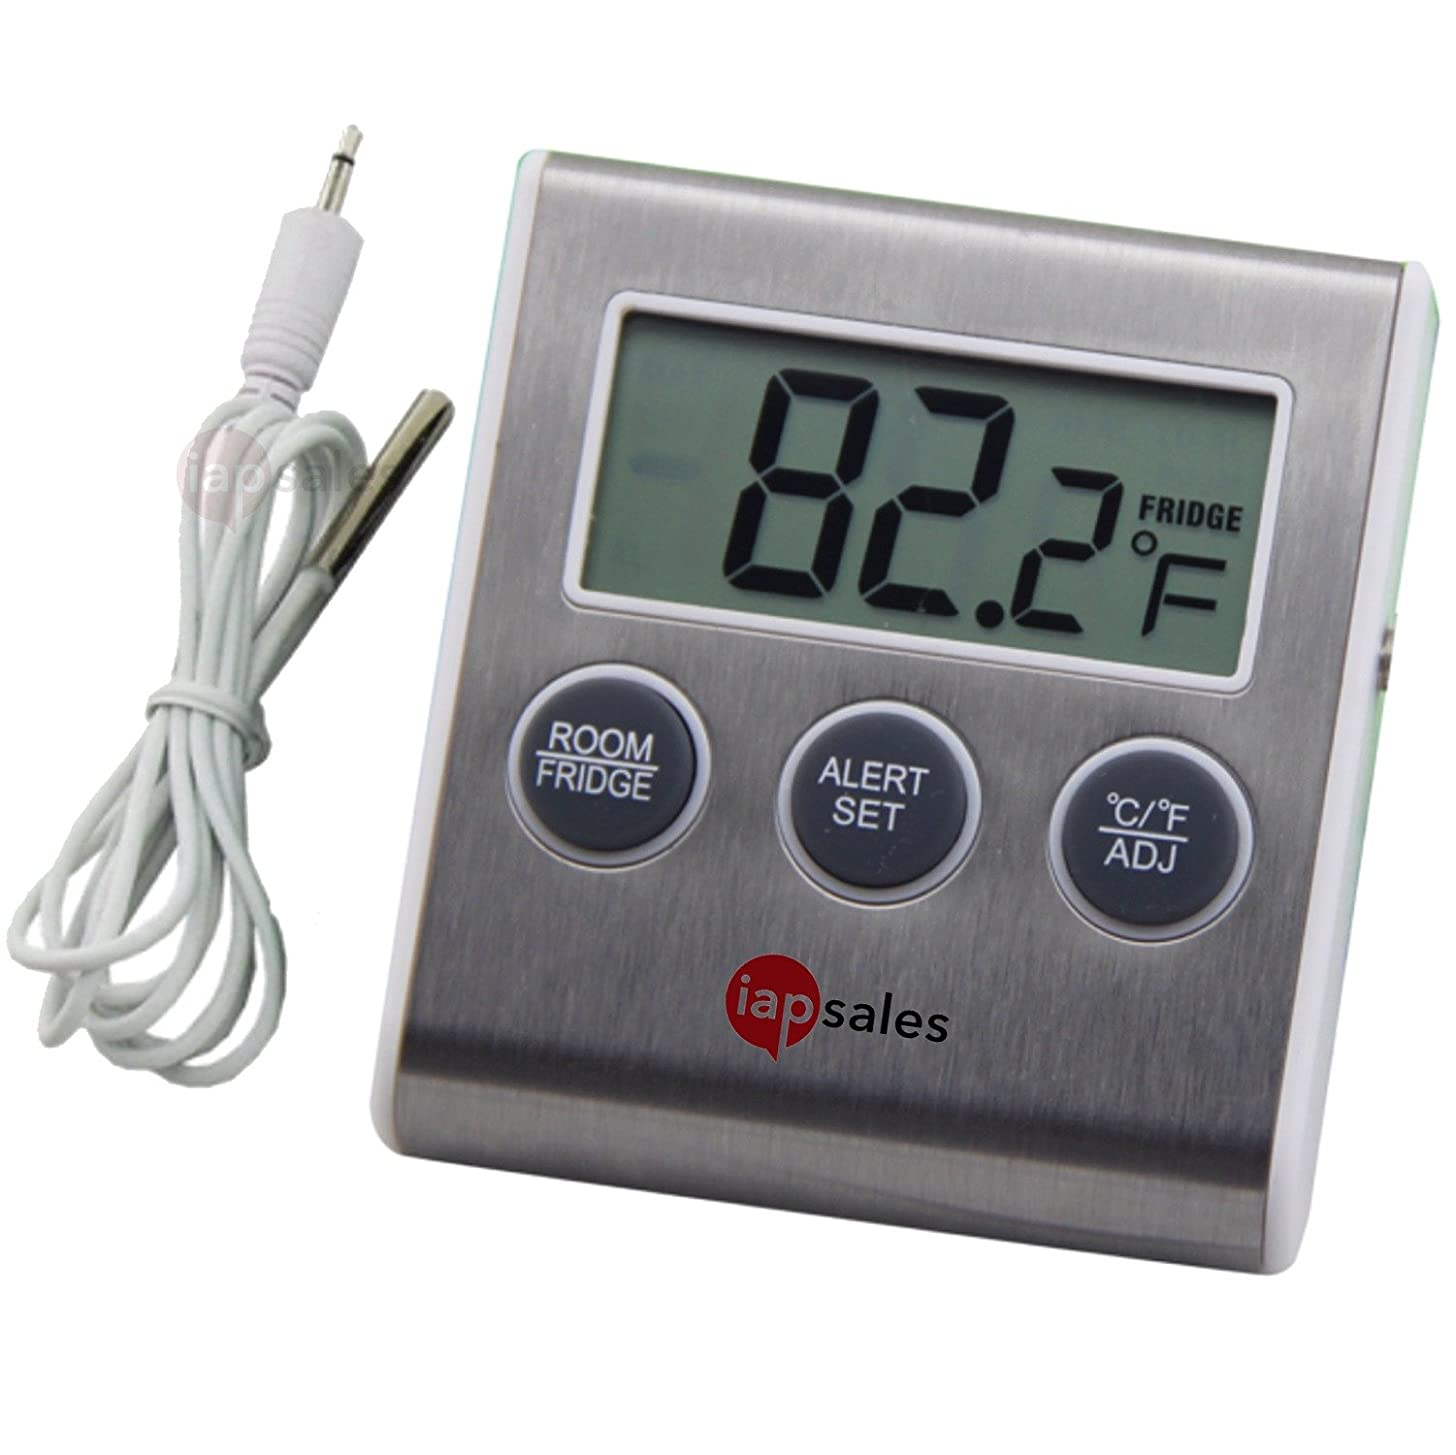 Easy to Read: Refrigerator Freezer Thermometer Alarm, High & Low Temperature Alarms Settings